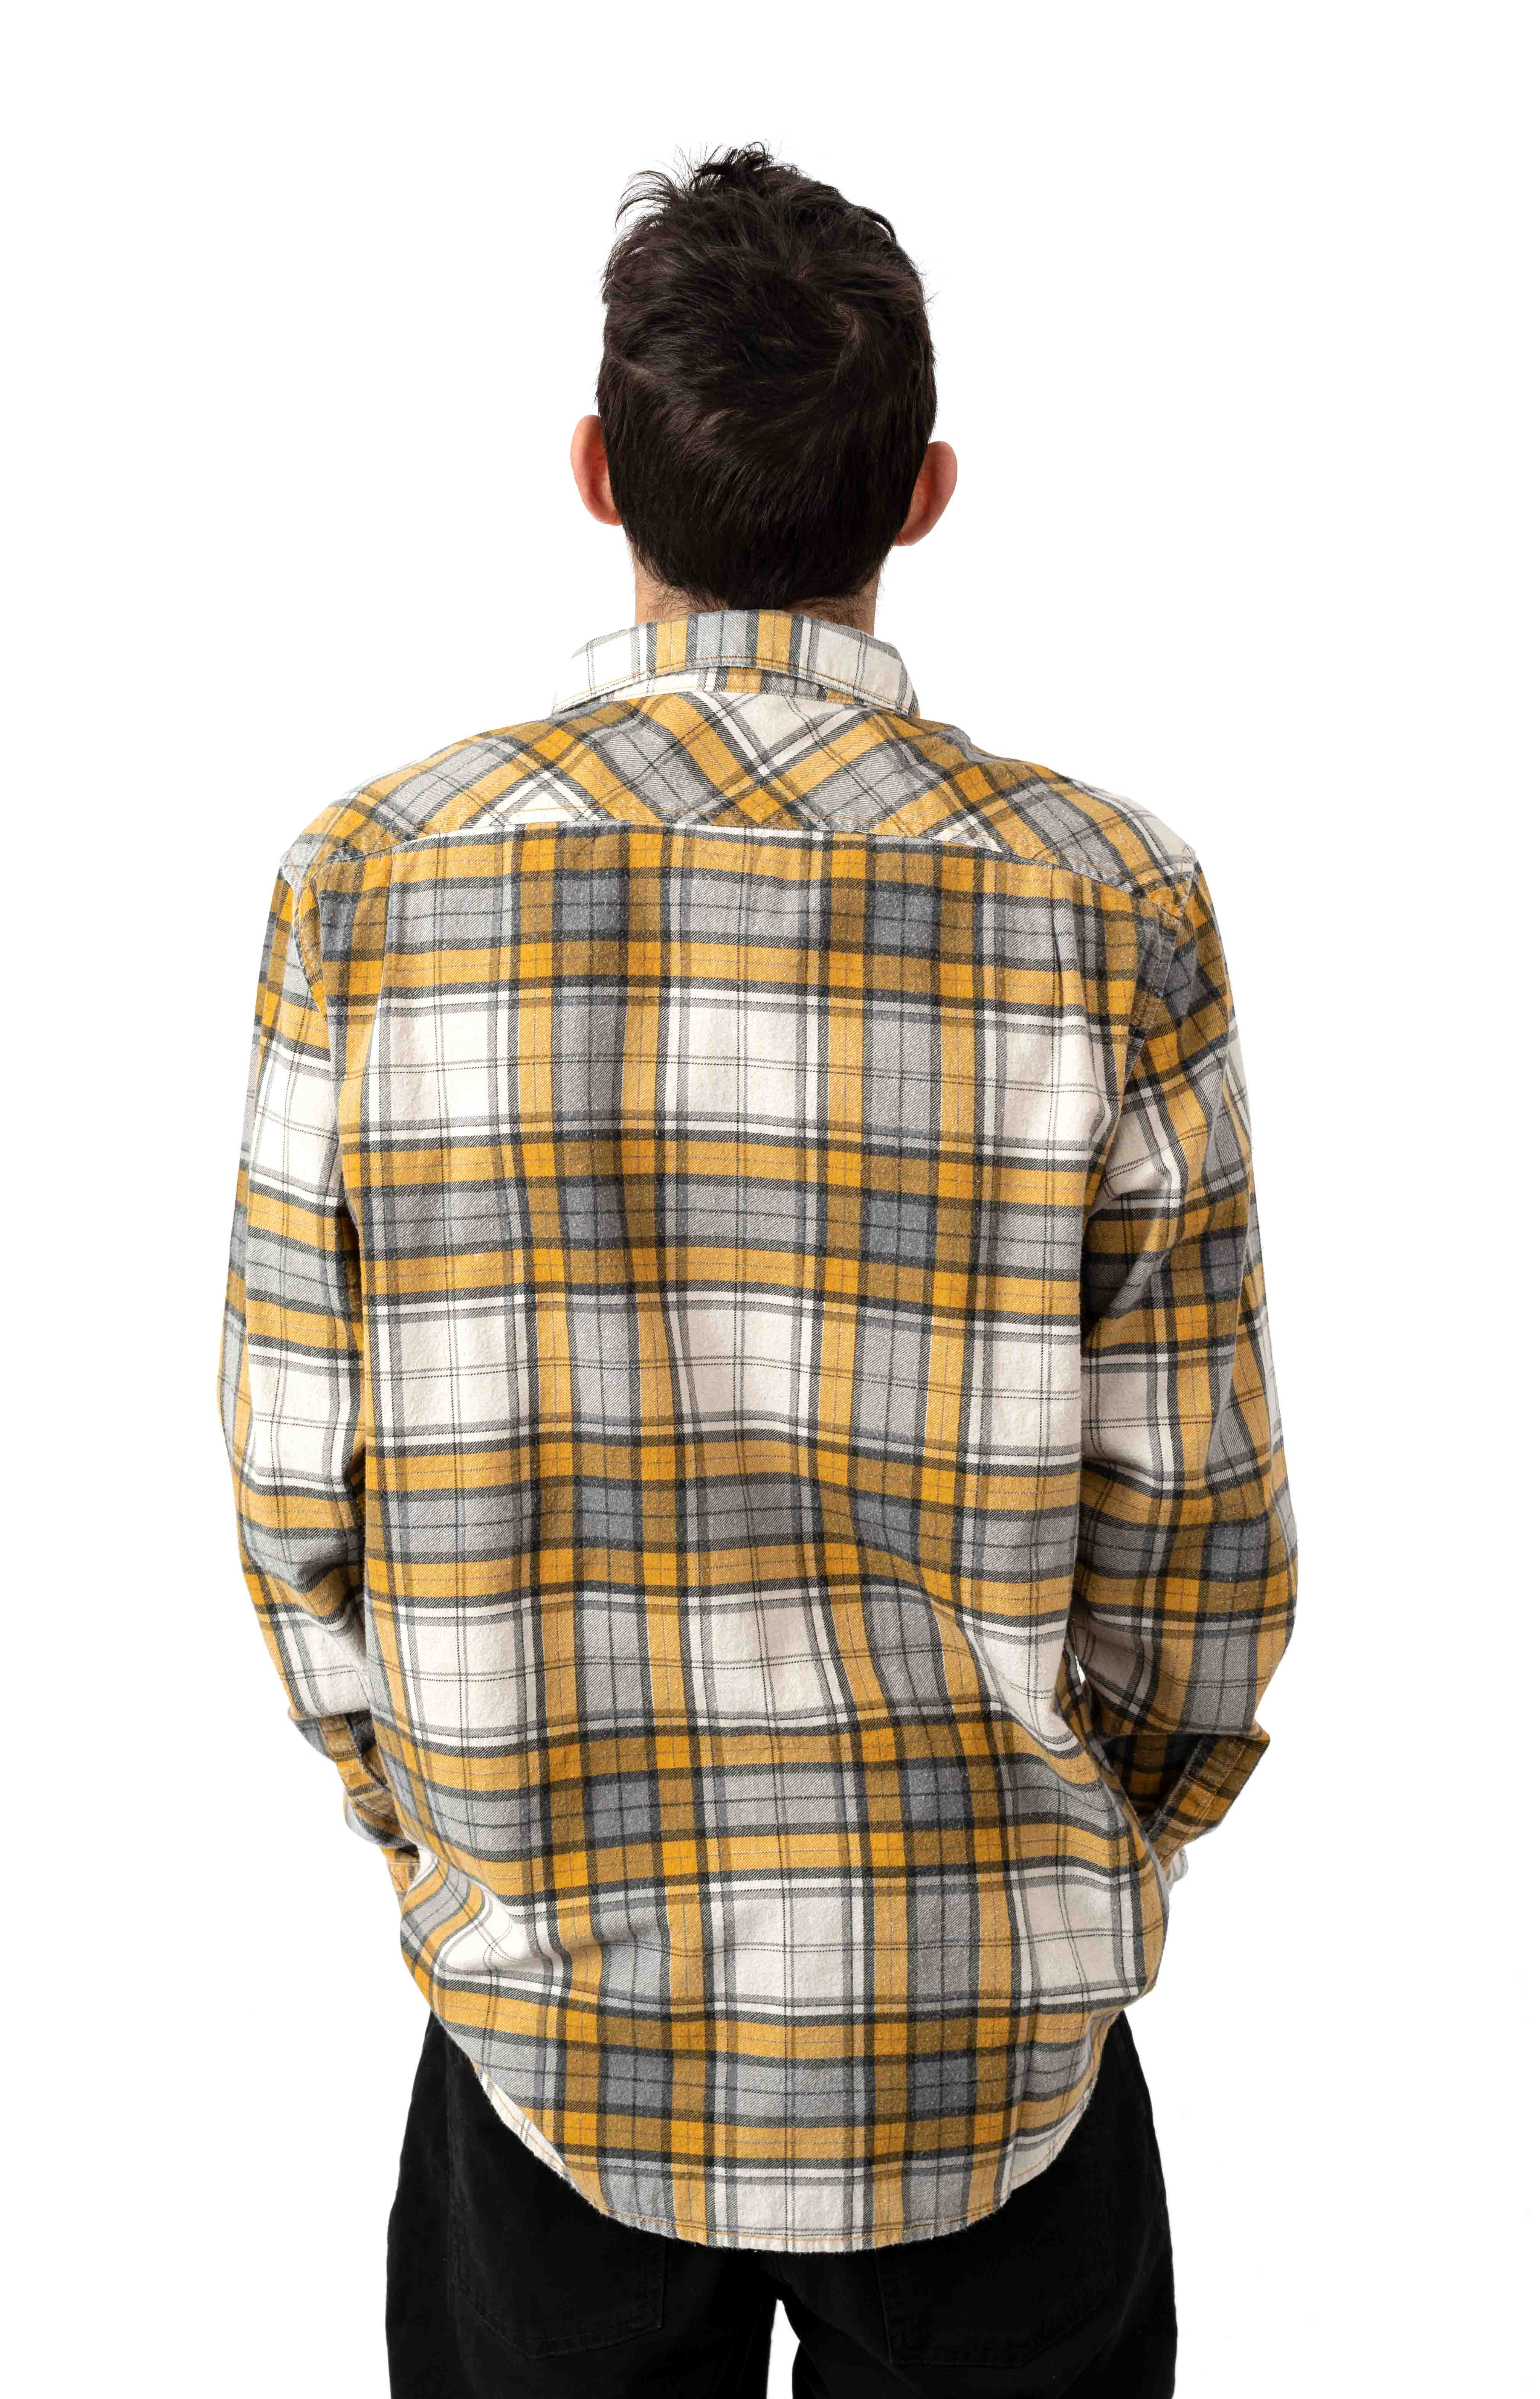 Panhandle Flannel Button-Up Shirt - Golden Yellow  3